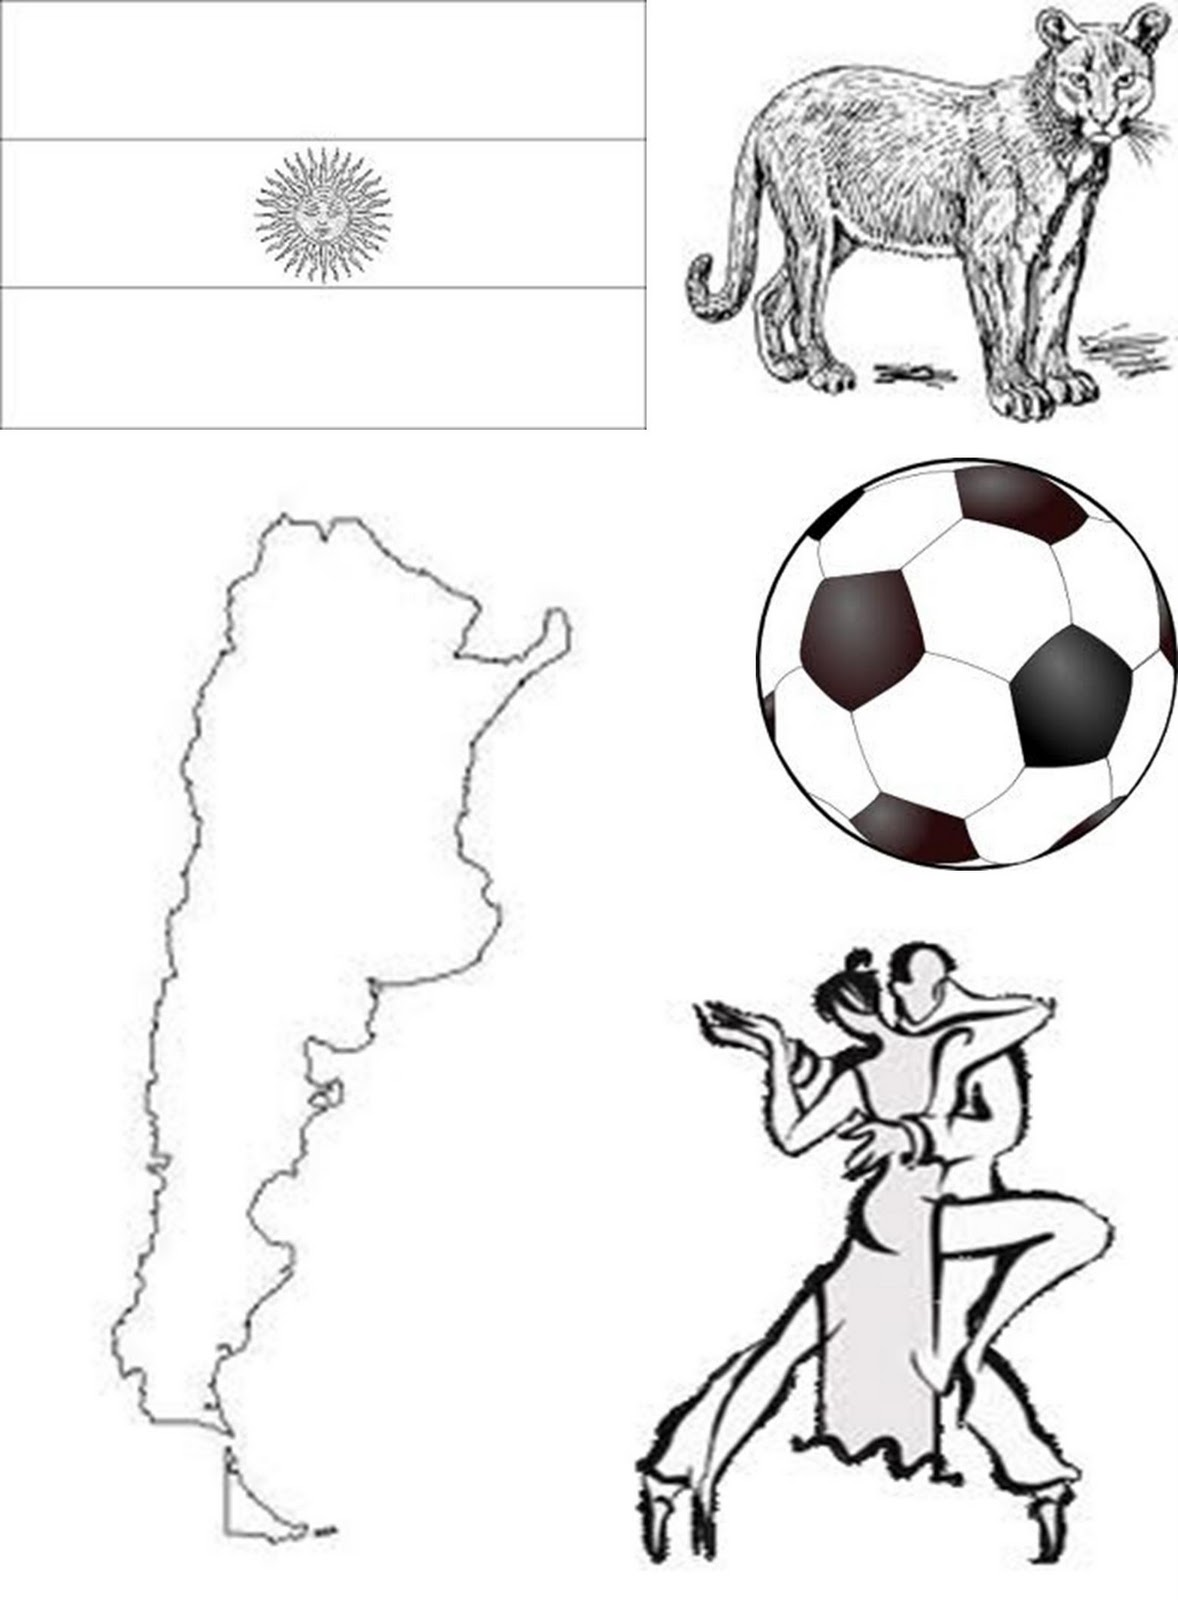 argentina flag coloring page - argentina flag coloring pages